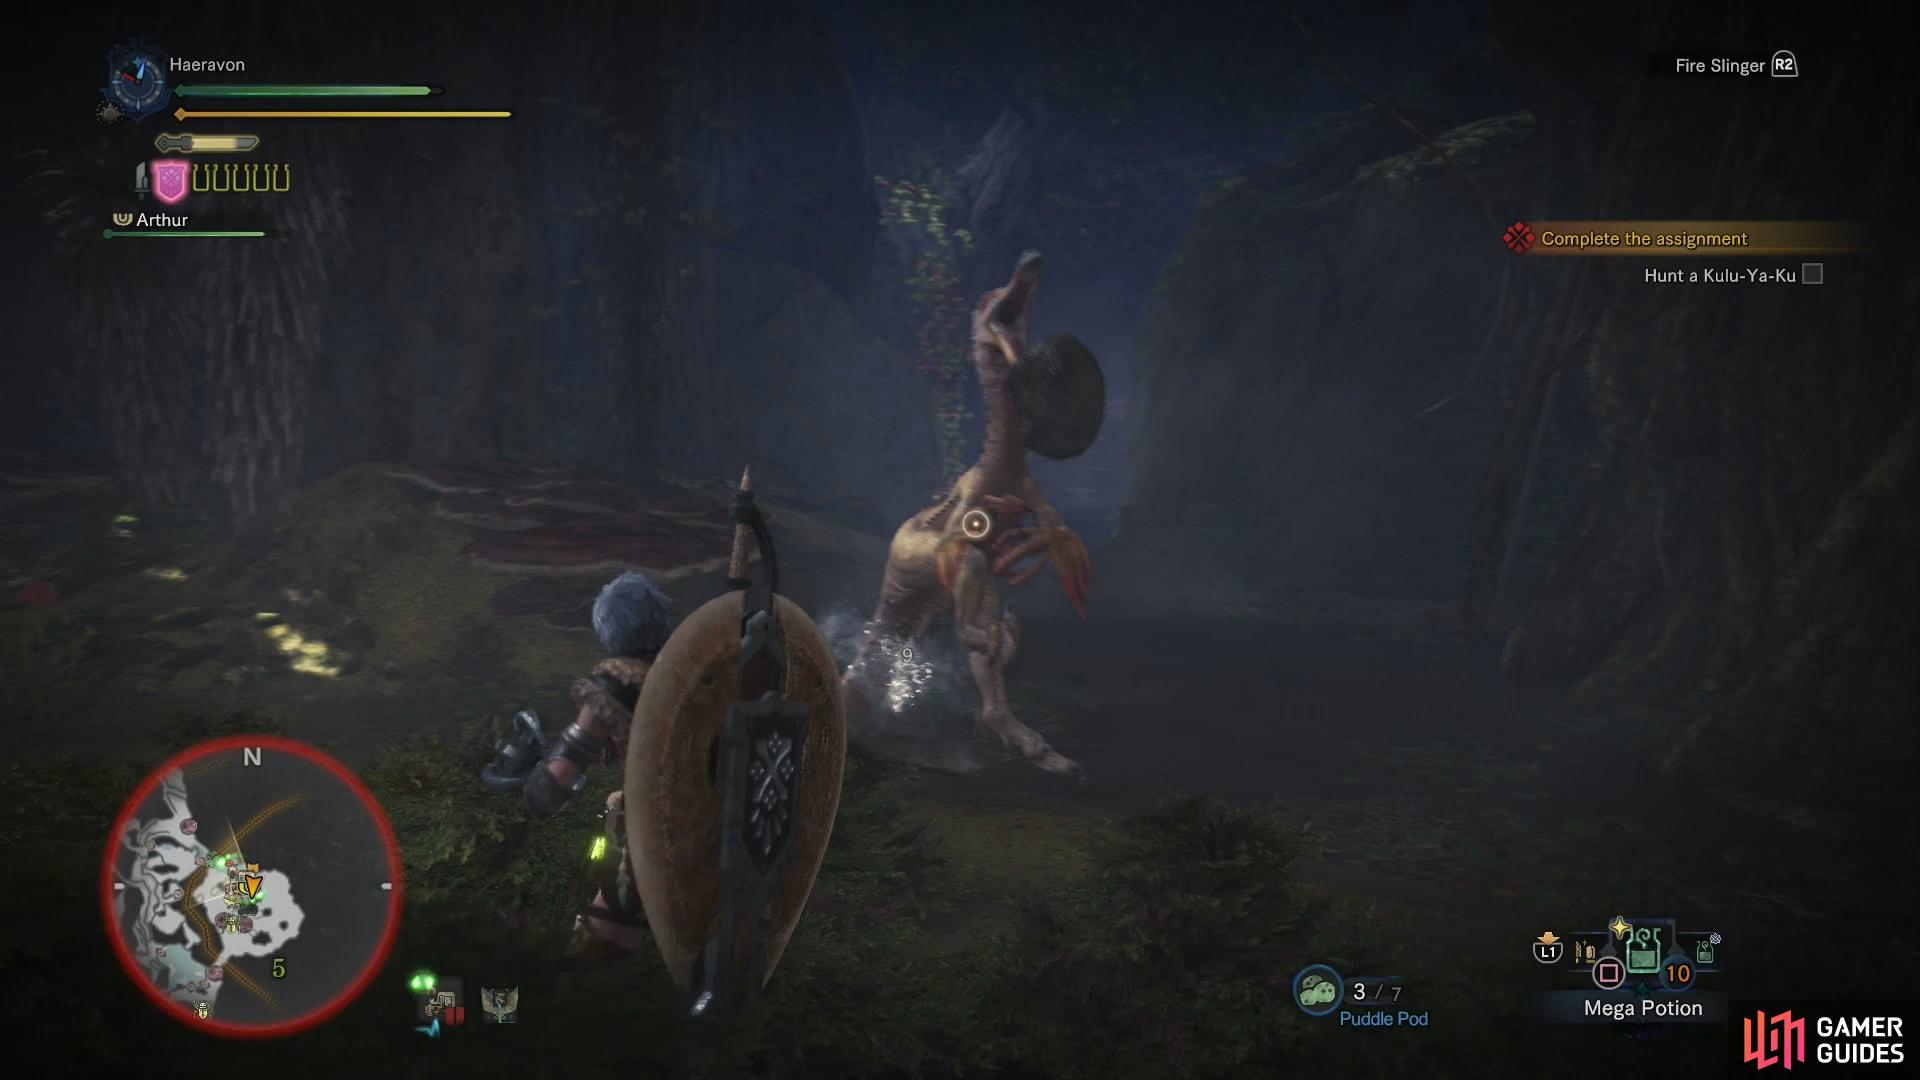 Pelting the Kulu-Ya-Ku with your Slinger may cause it to drop its boulder